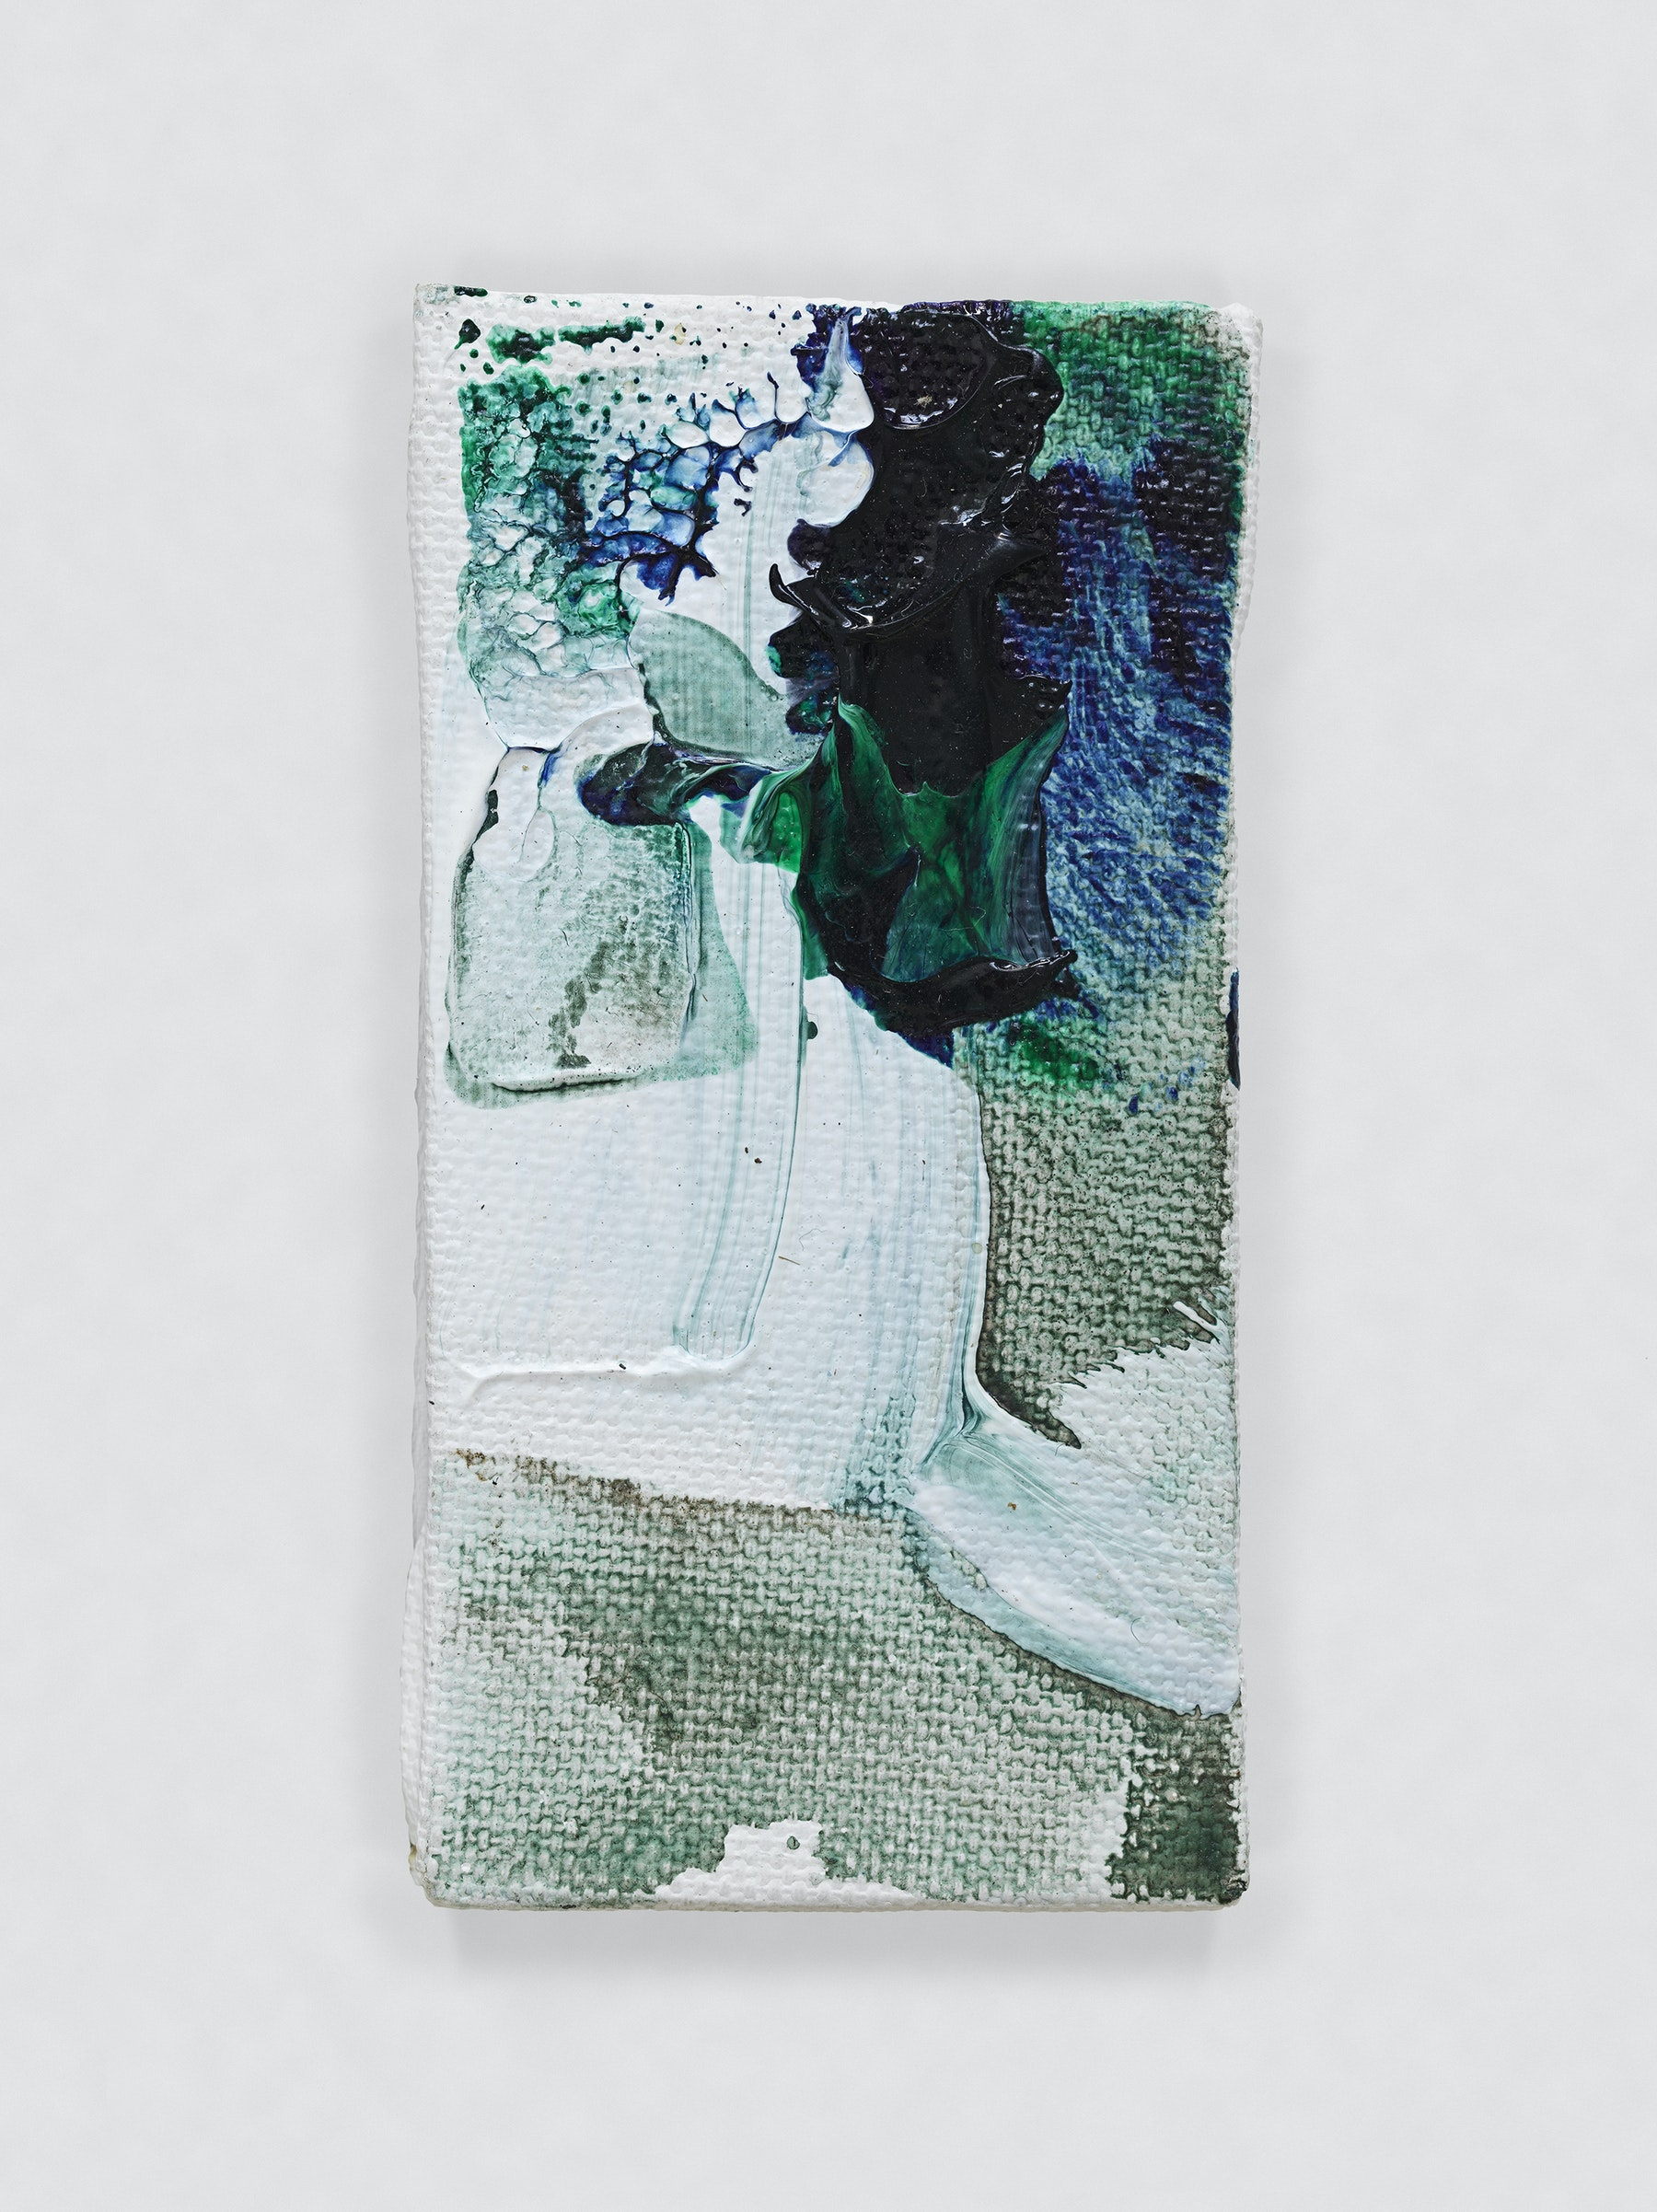 """Louise Fishman """"UNTITLED,"""" 2014 Oil on canvas 4.06 x 2.09"""" [HxW] (10.31 x 5.31 cm) Inventory #FIS147 Courtesy of the artist and Vielmetter Los Angeles Photo credit: Genevieve Hanson Signed and dated on verso"""